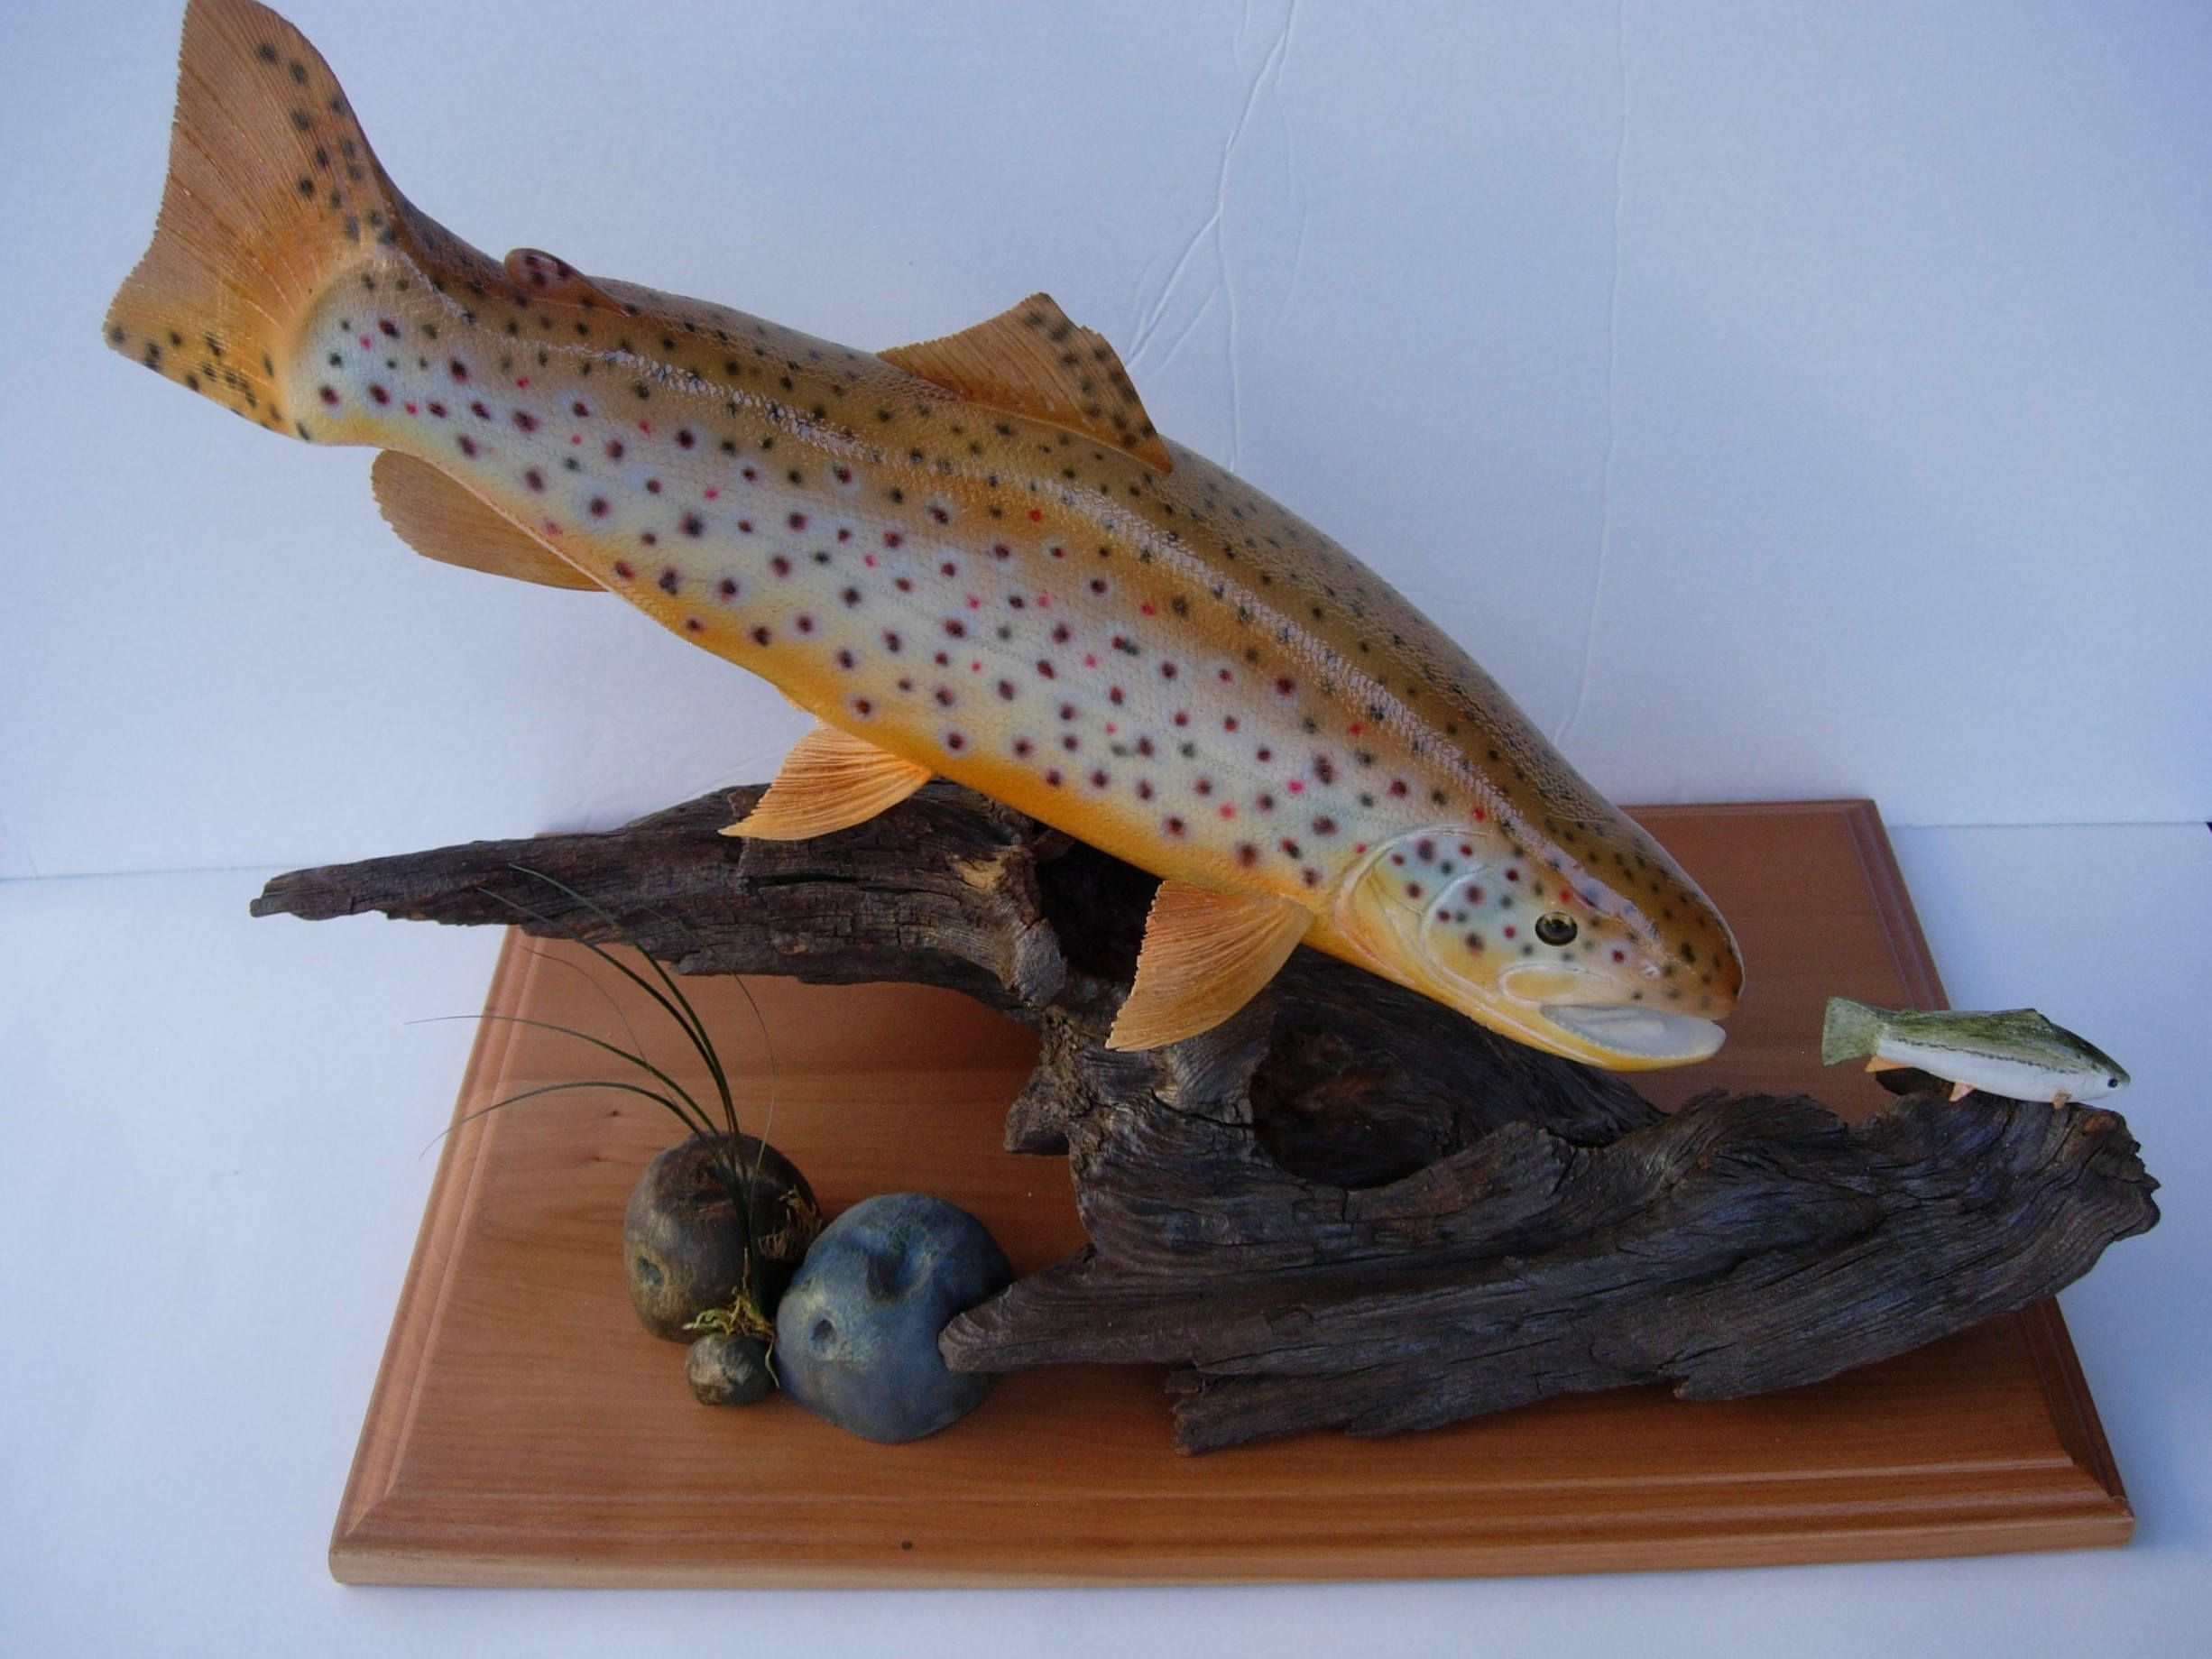 Fly Fishing Art Wildlife Fish Decor Wood Sculpture Carving Nature Gift